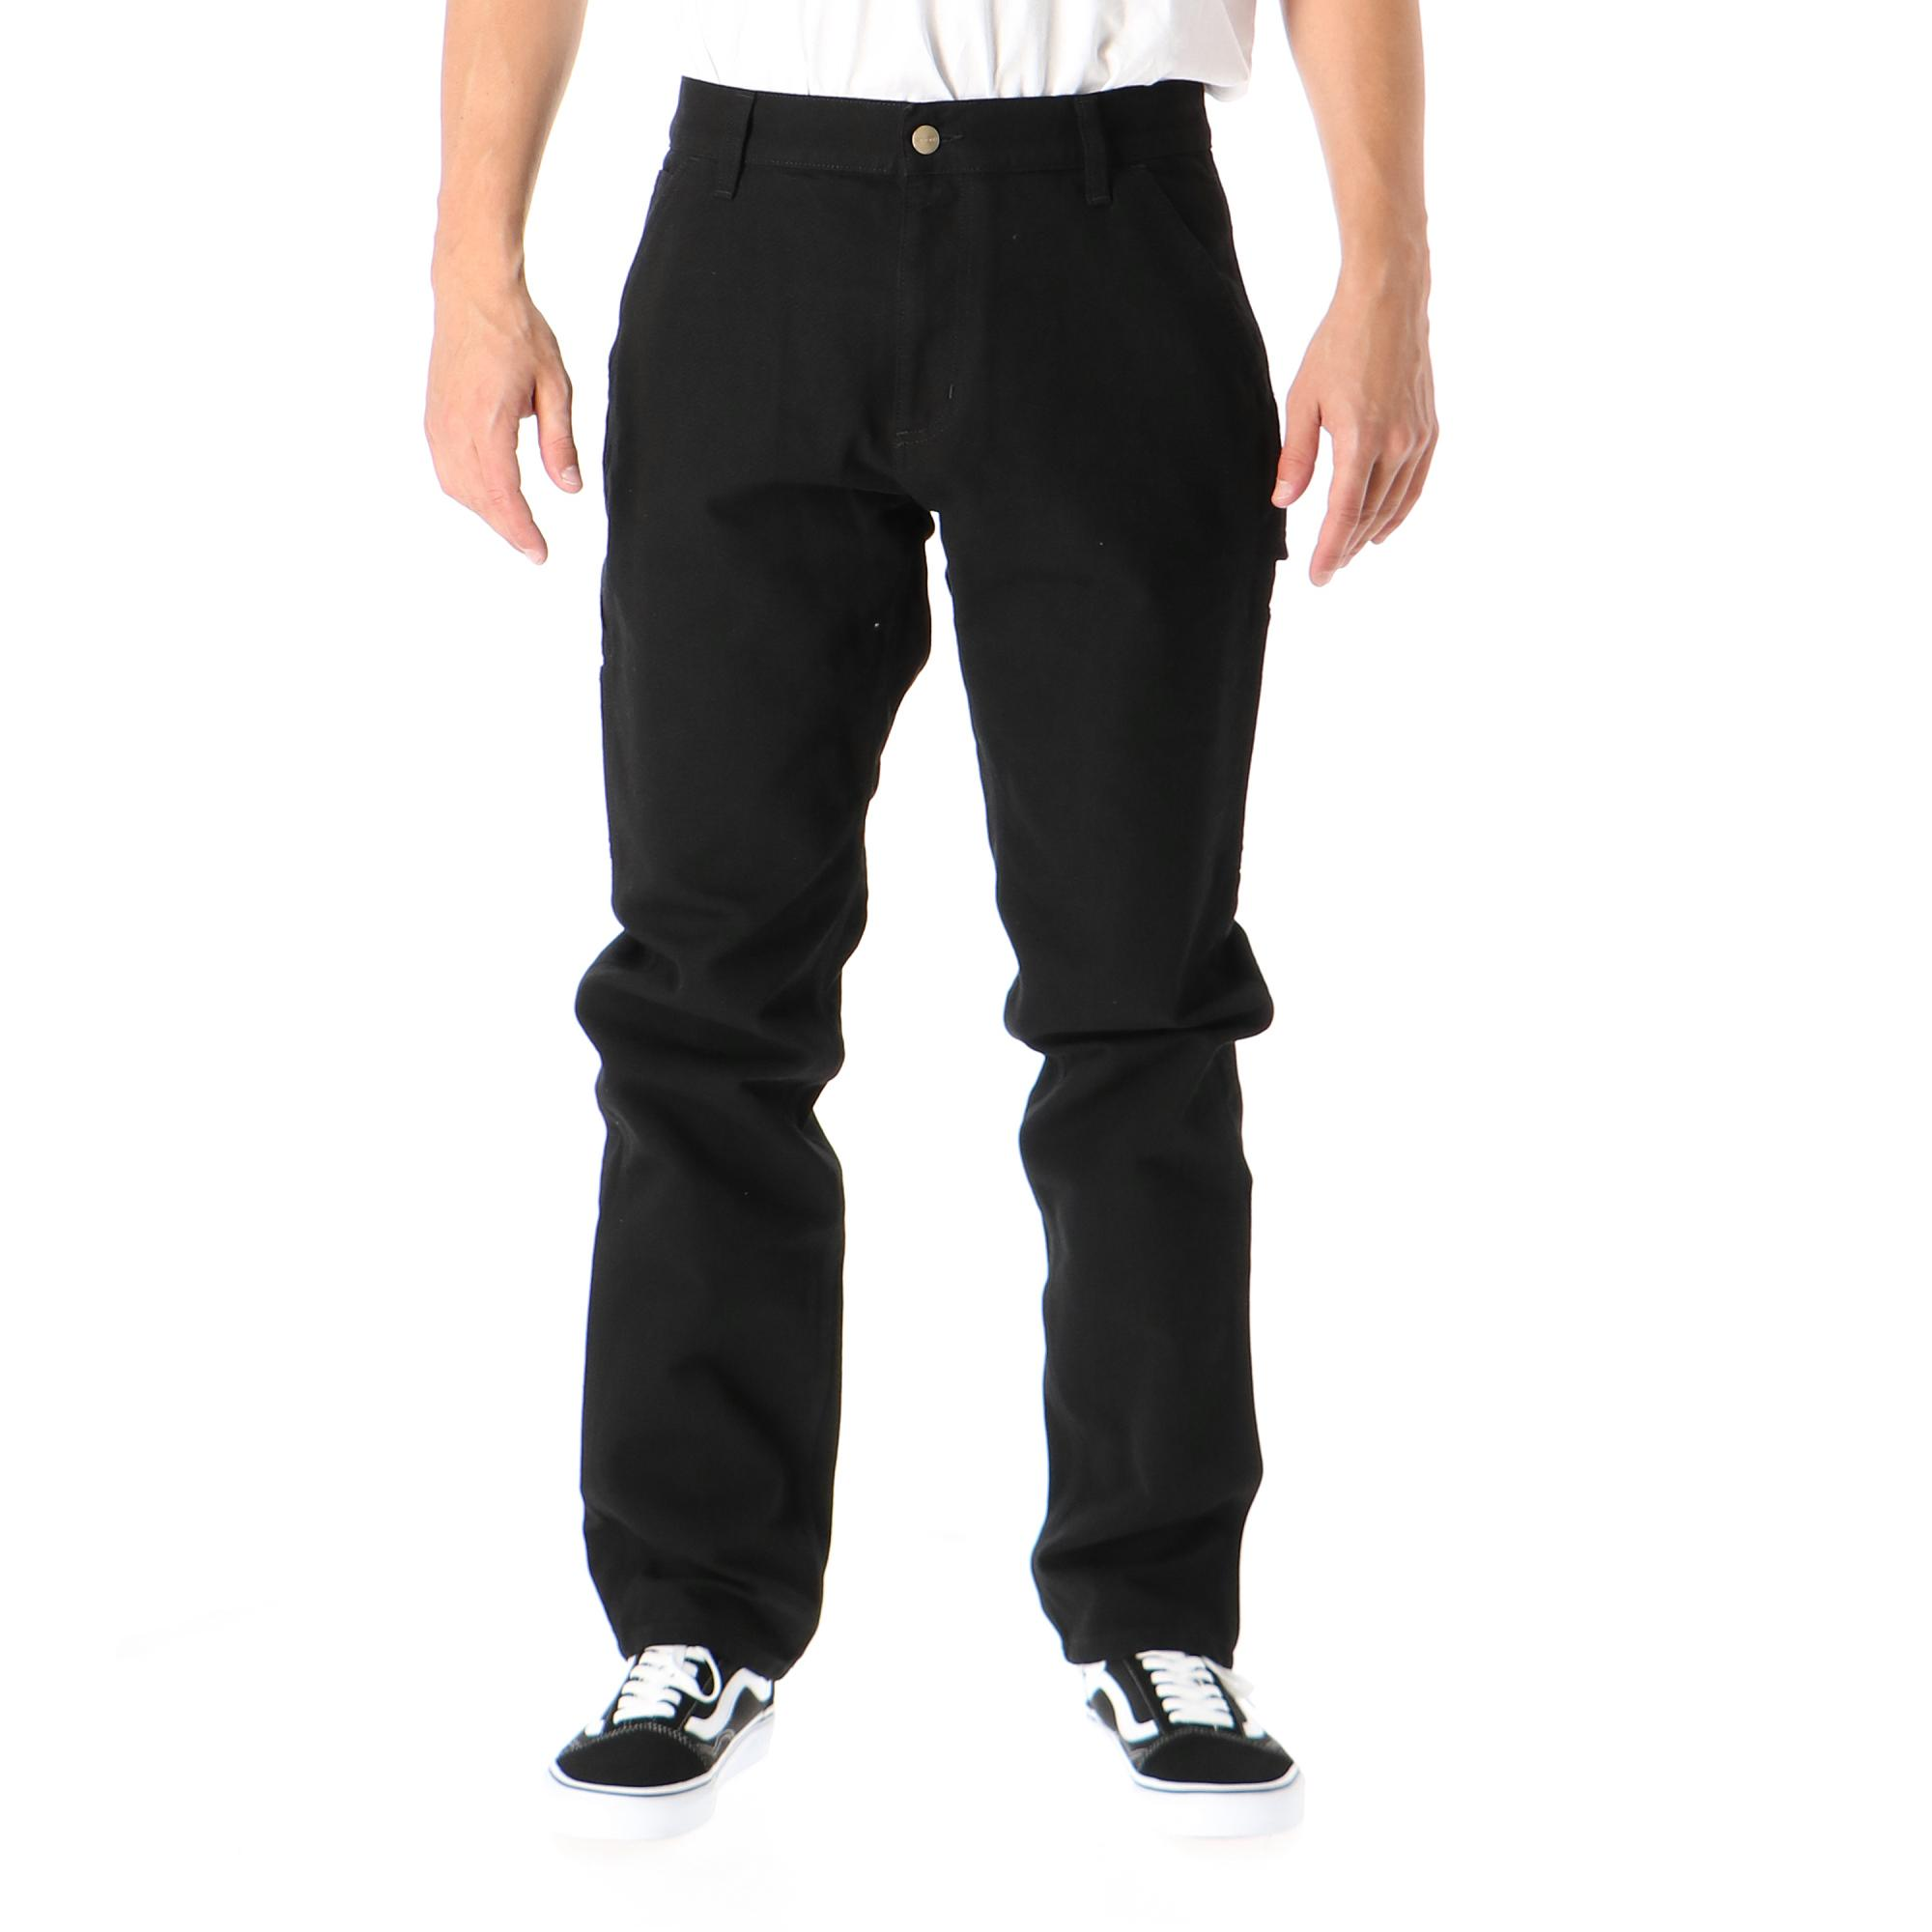 Carhartt Ruck Single Knee Pant Black rinsed